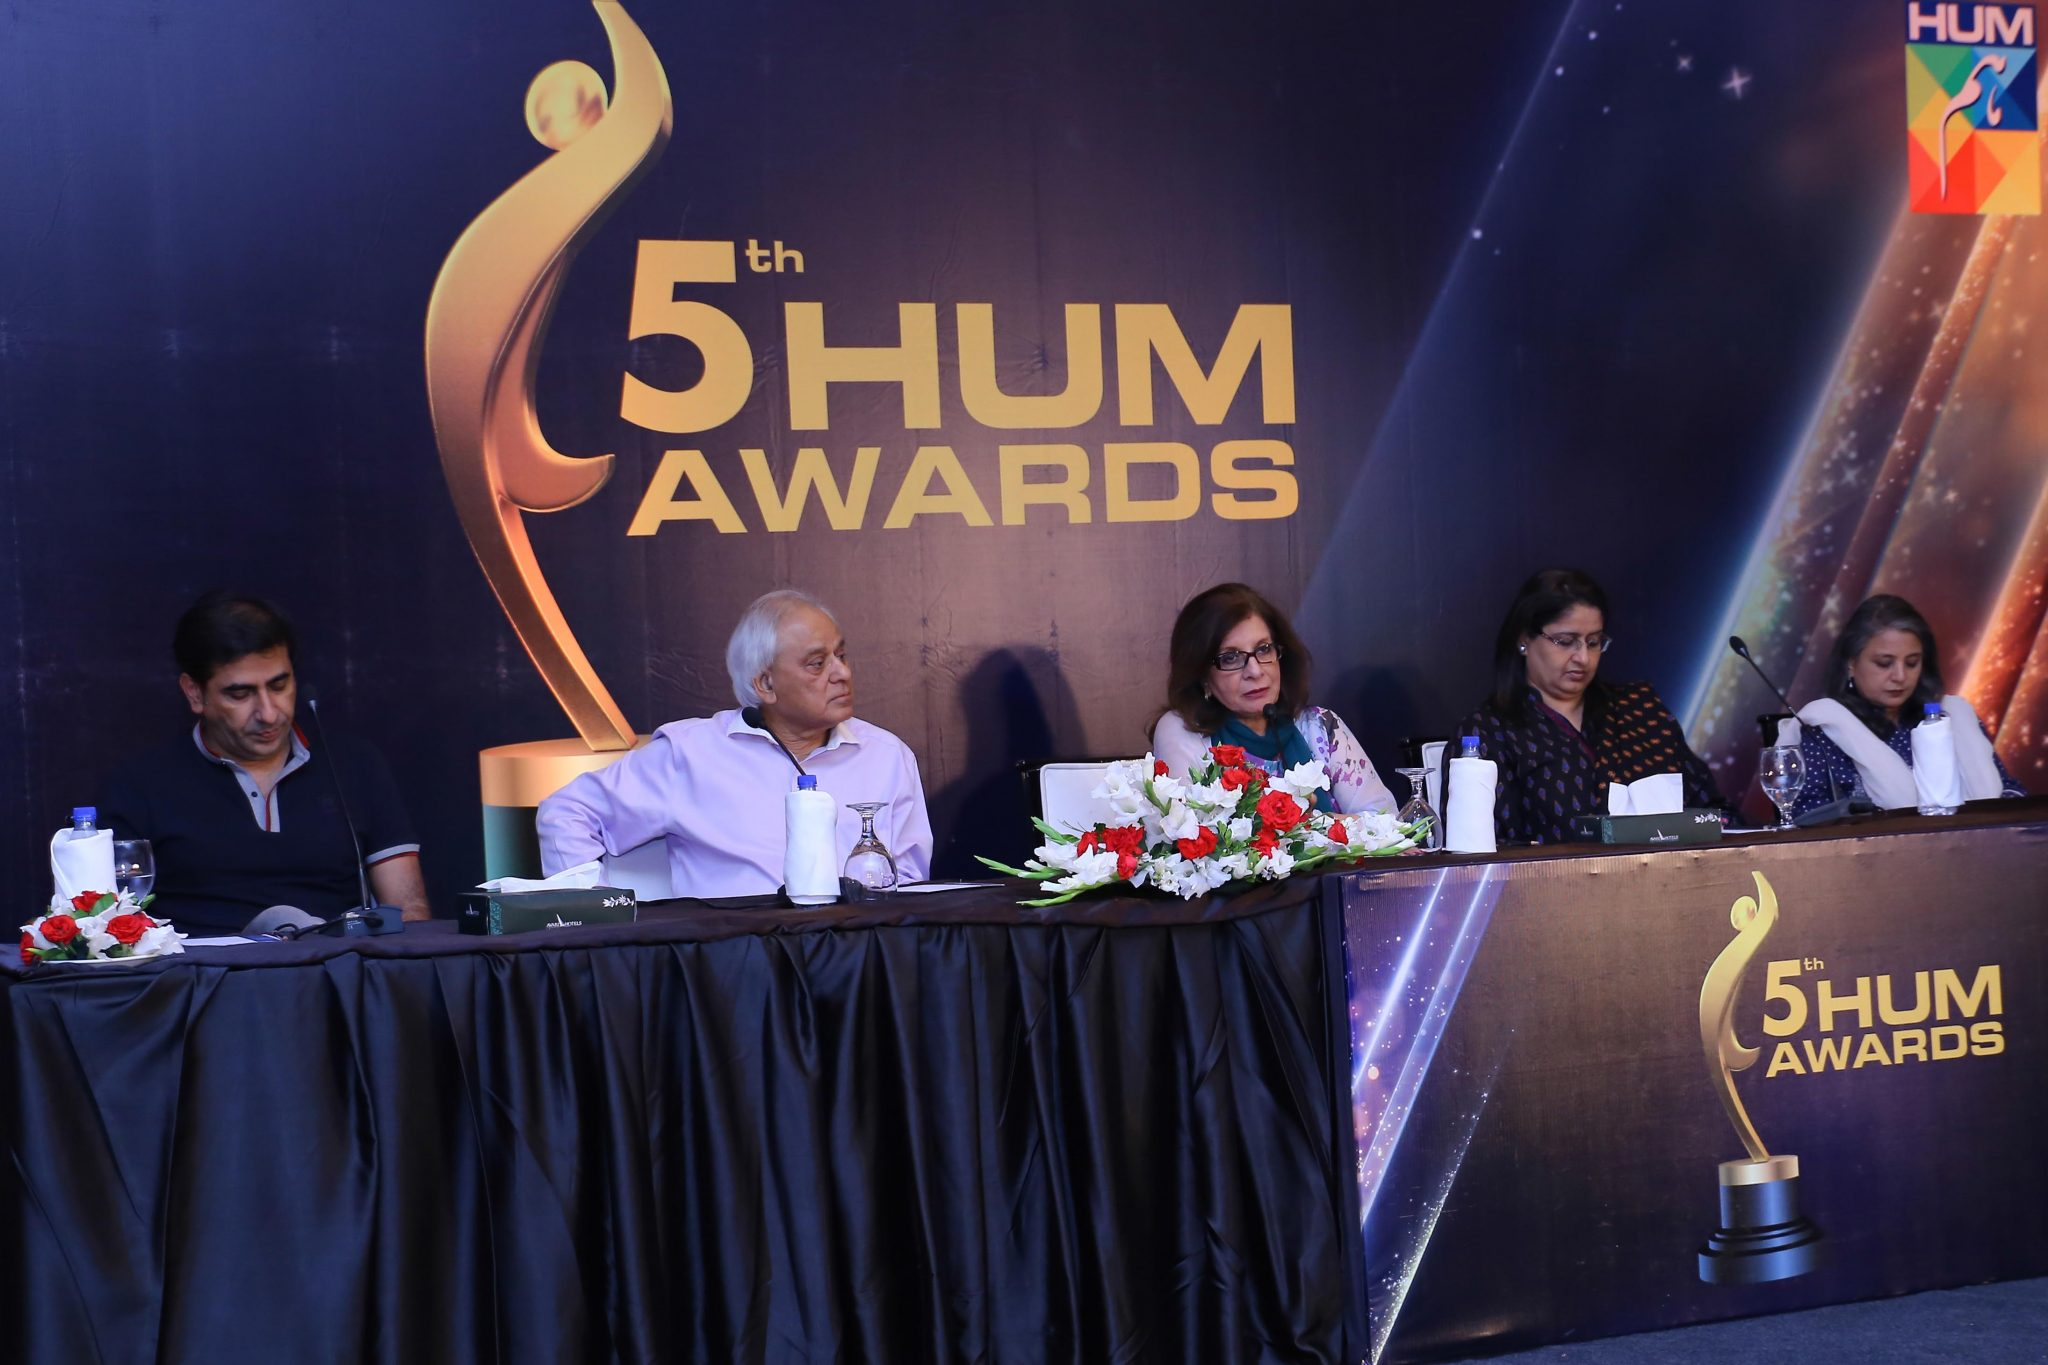 Pakistan's Cultural Capital to Host the 5th HUM Awards 2017 (2)